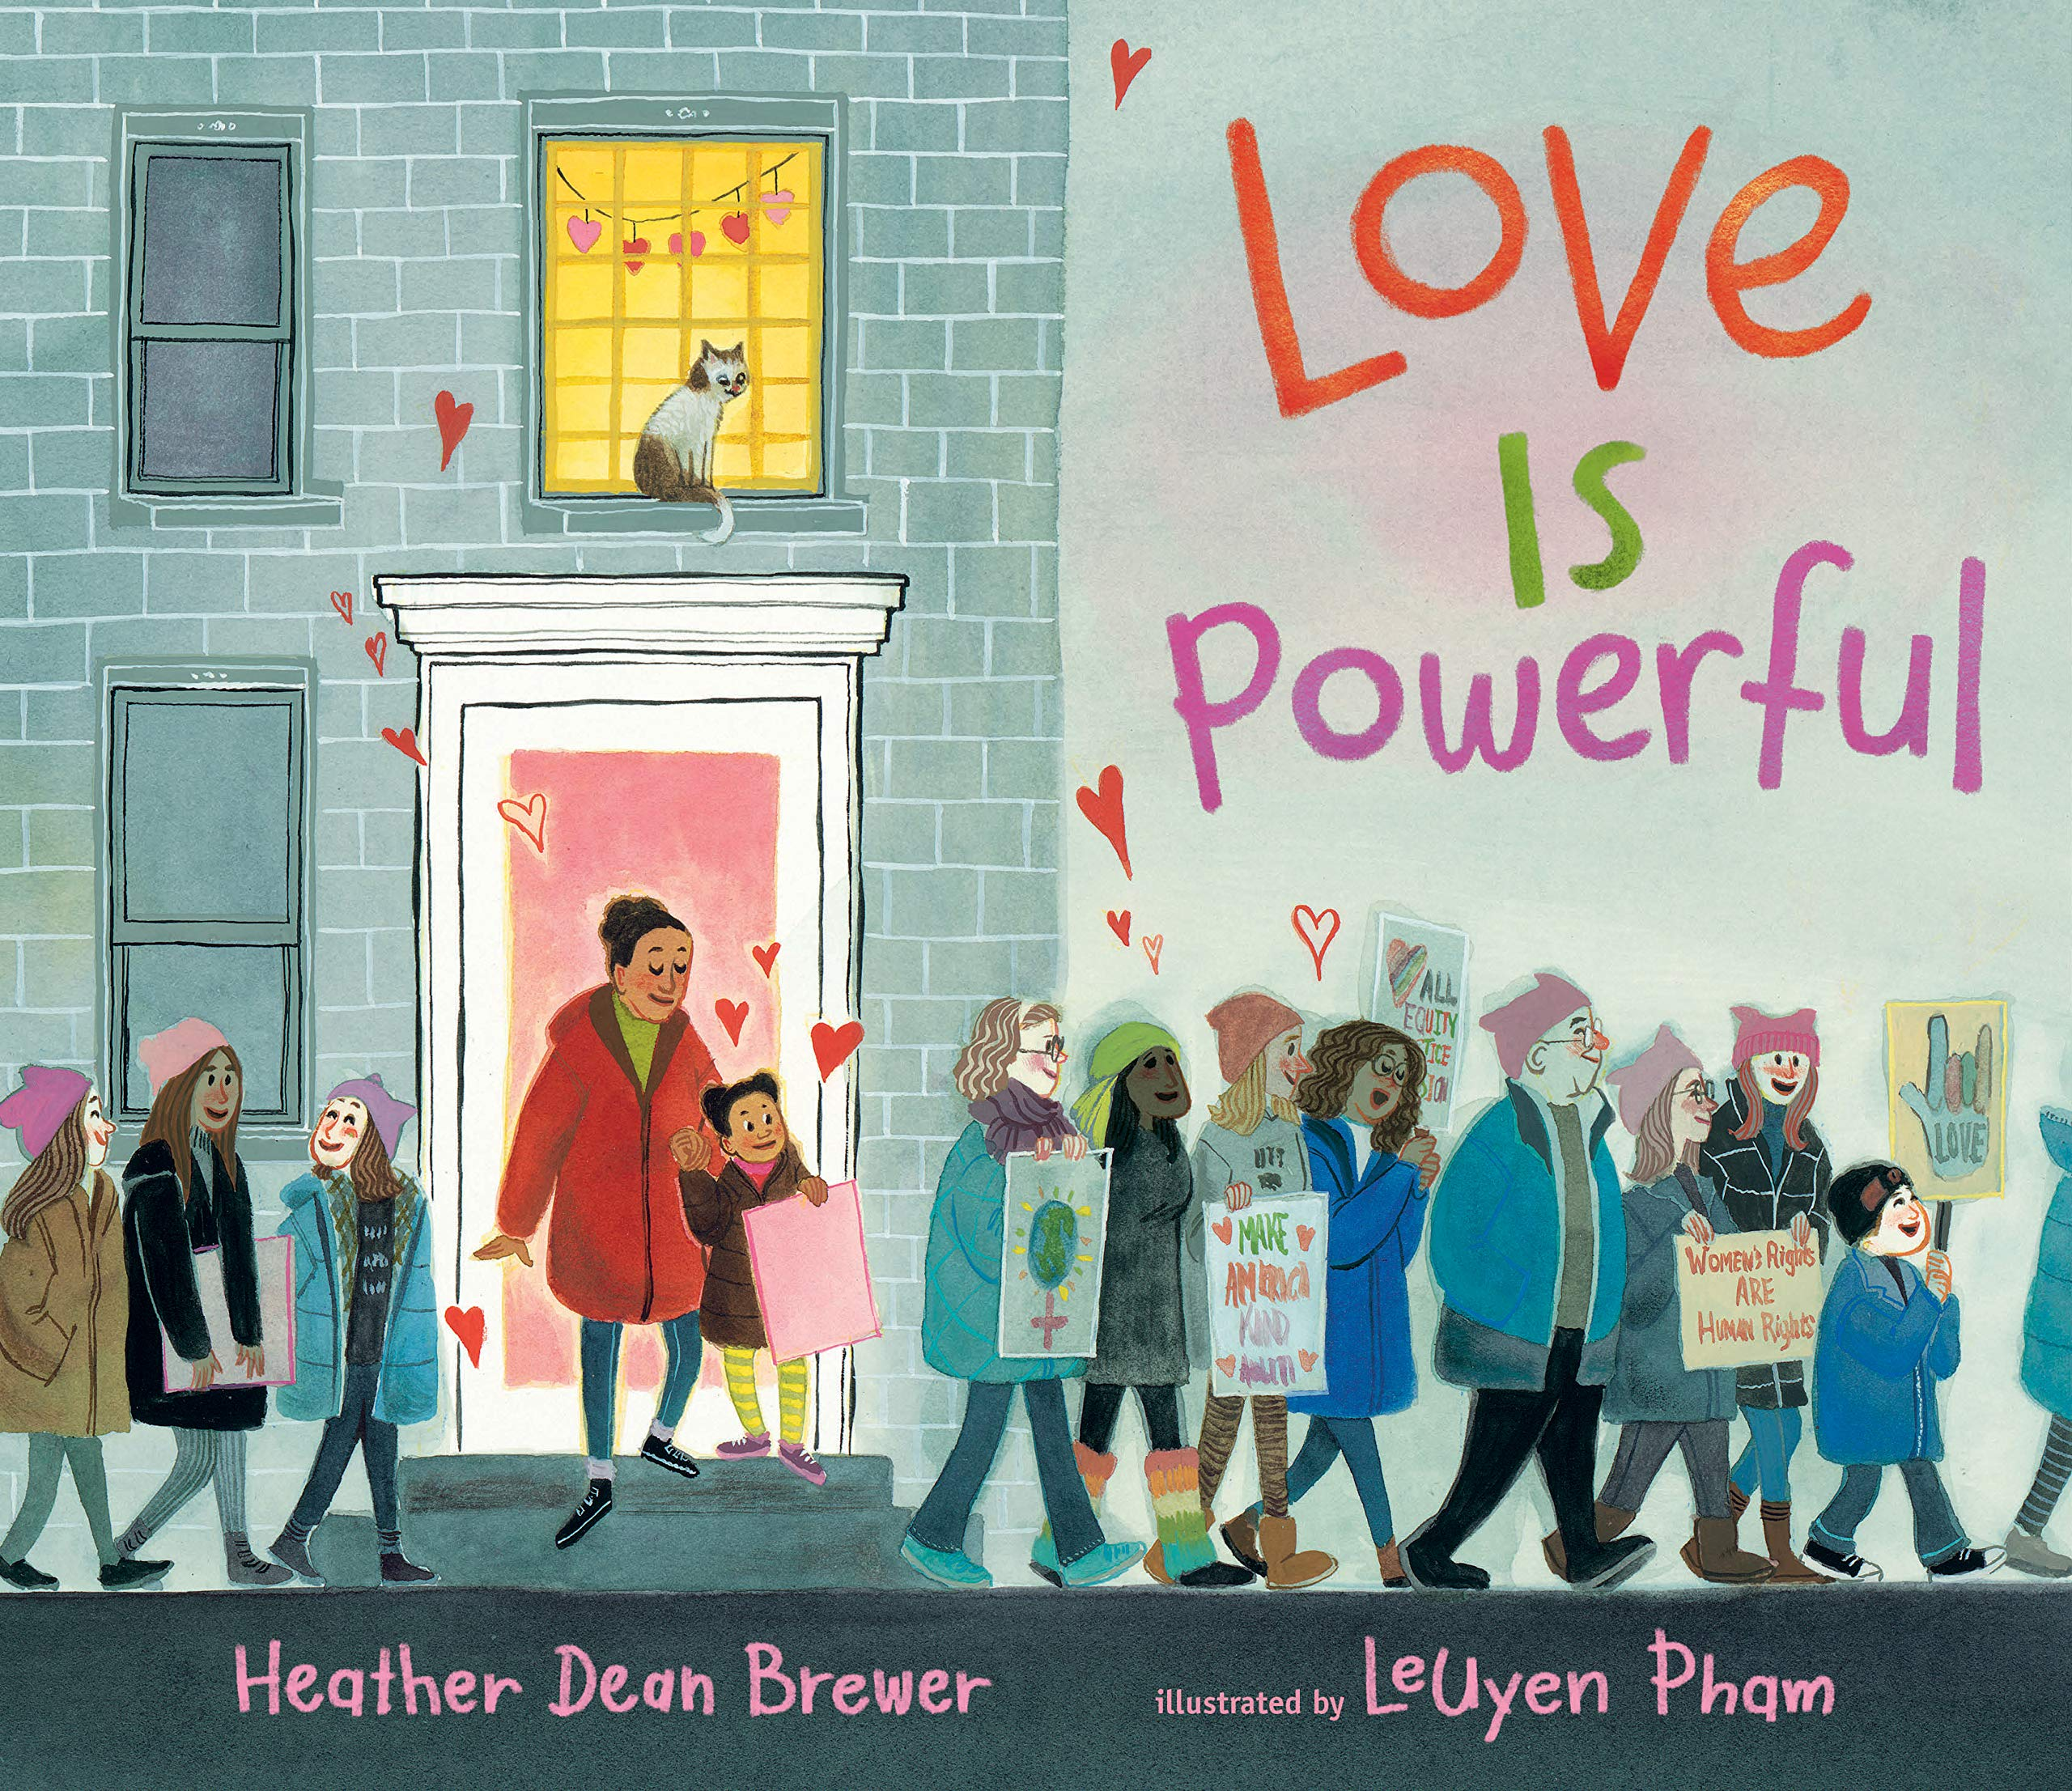 Love Is Powerful: Brewer, Heather Dean, Pham, LeUyen: 9781536201994: Amazon.com: Books